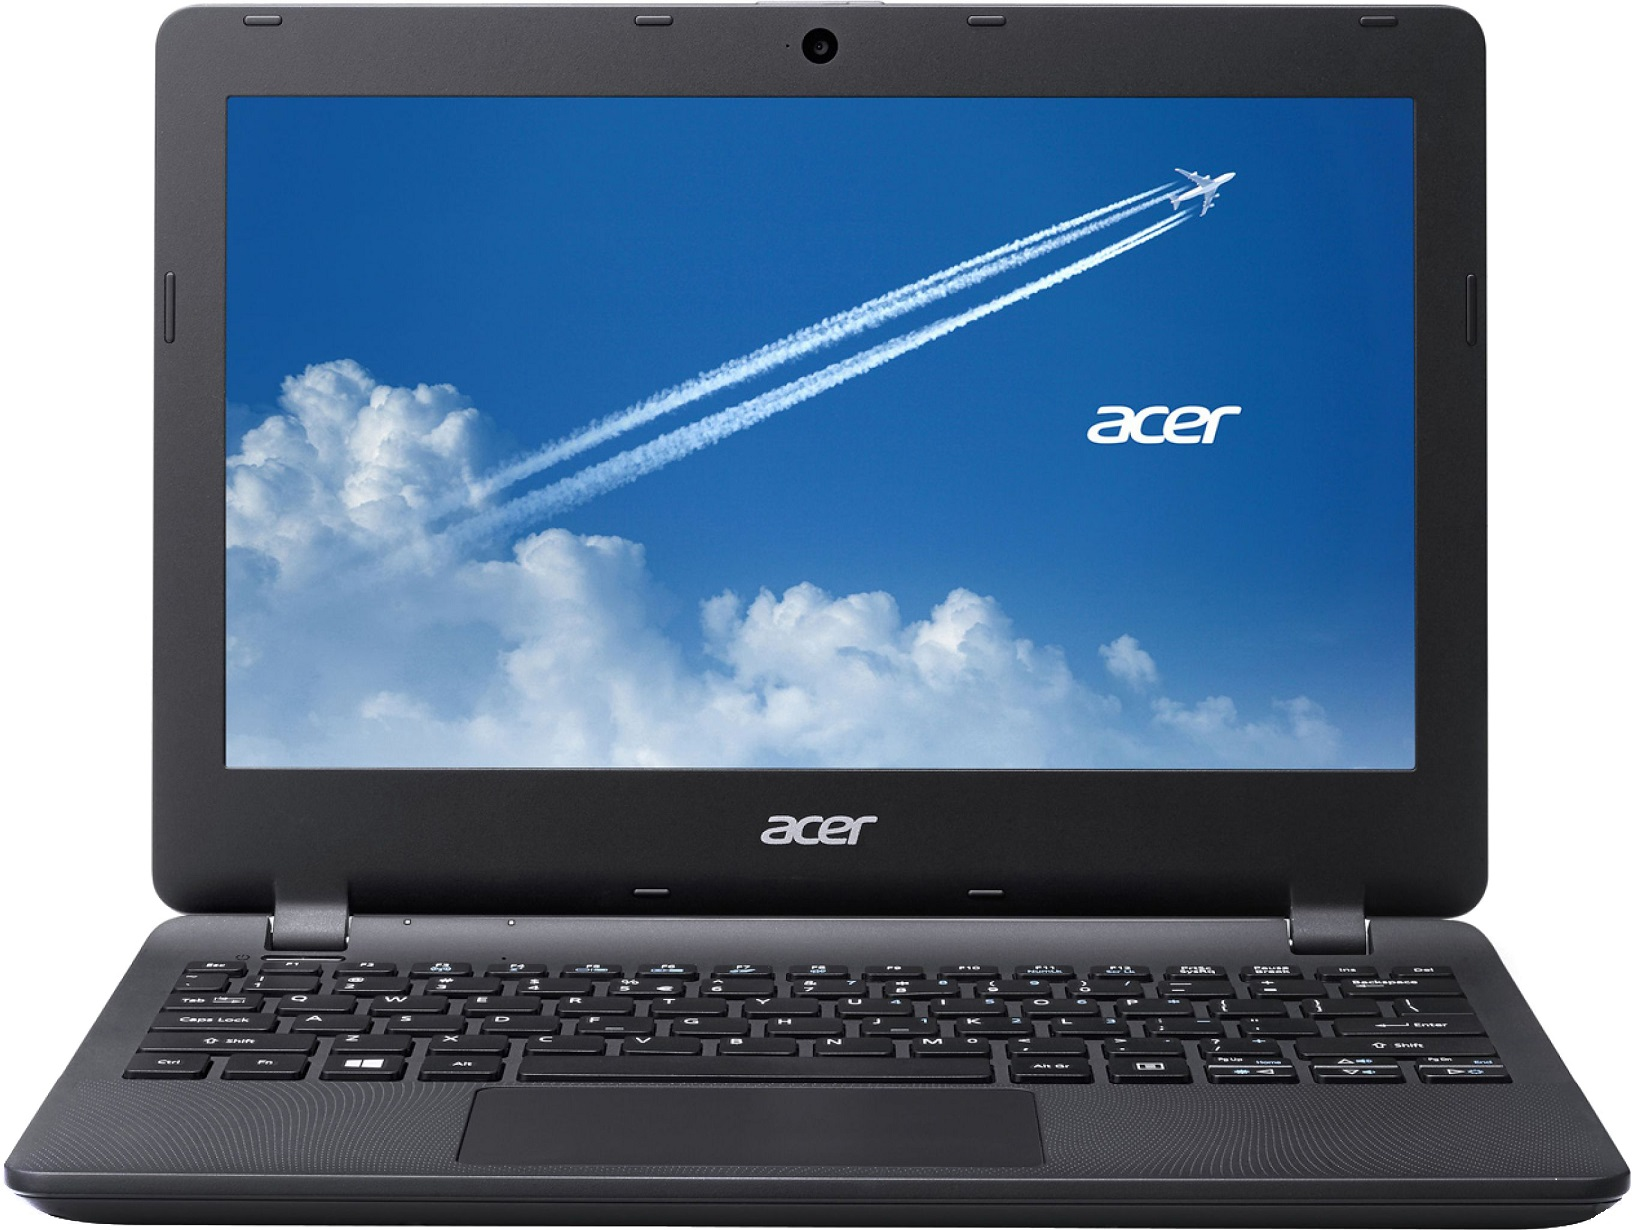 acer inc the leading marketer of Asus story dell inc story in 1981, the company was given the name 'acer inc' their first successful product was the 'microprofessor' which went on to provide them with revenue for their future projects.